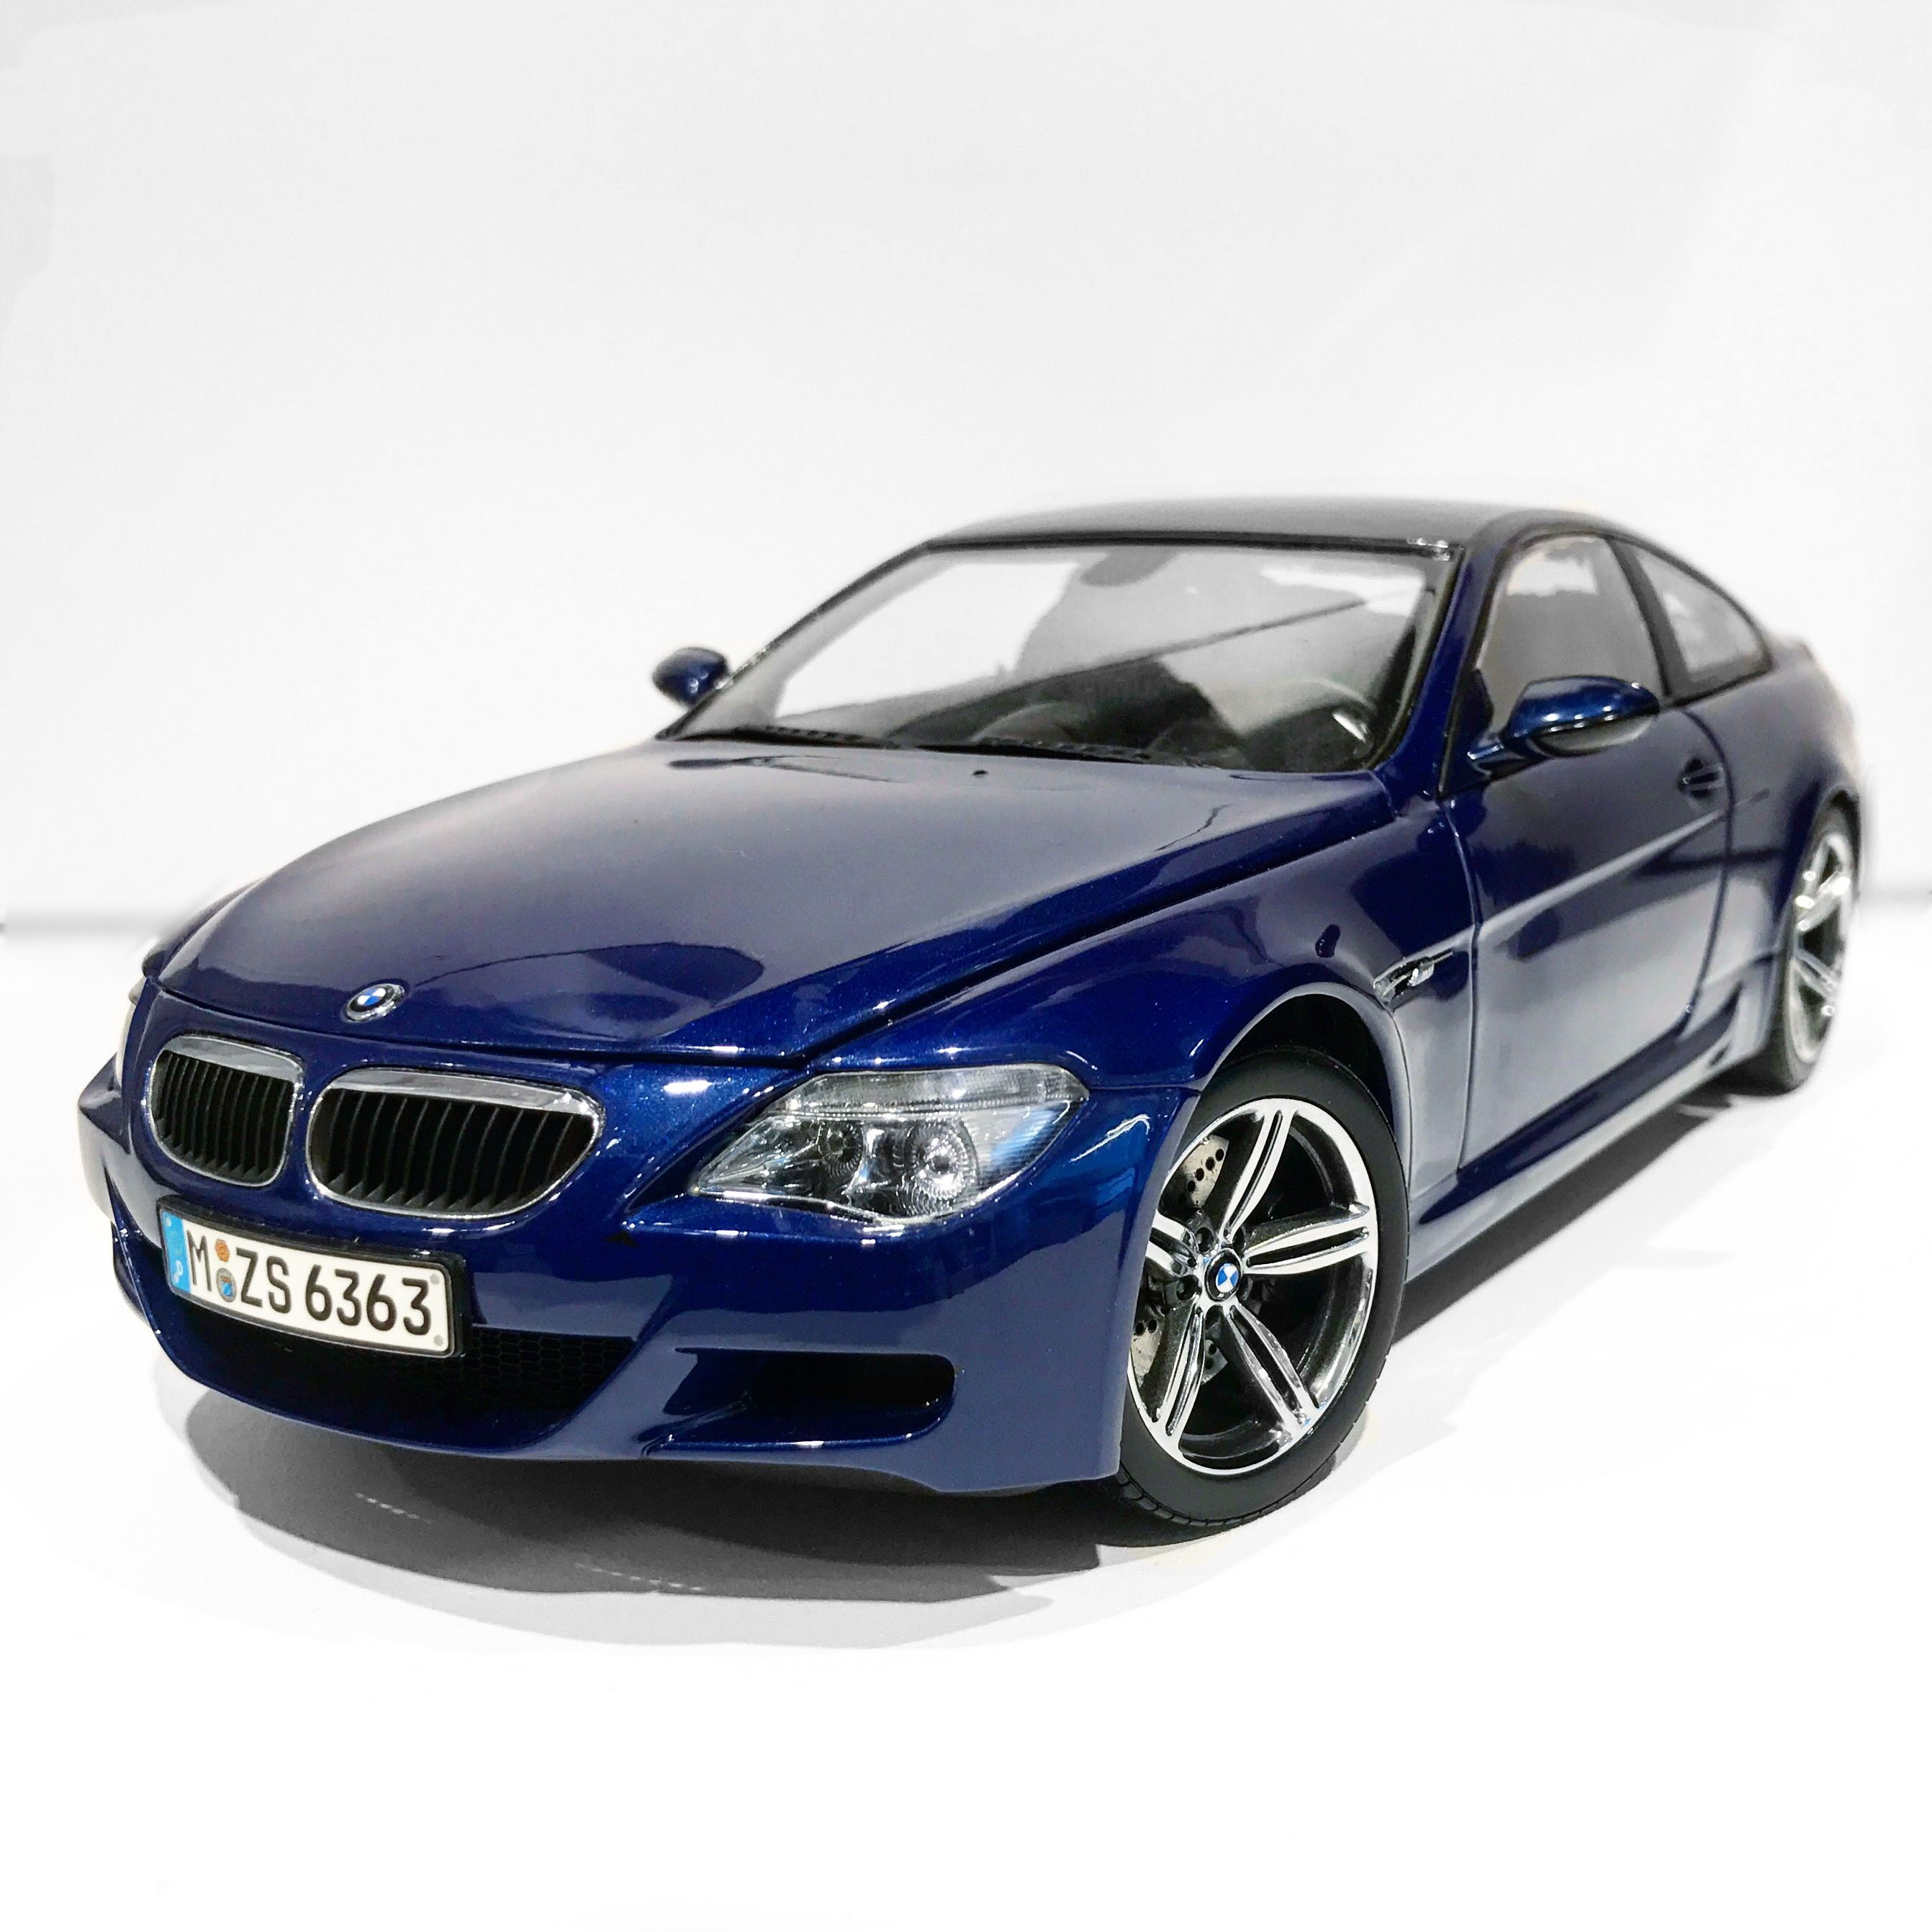 kyosho e63 bmw m6 coupe dealer edition interlagos blue metallic rh pinterest com